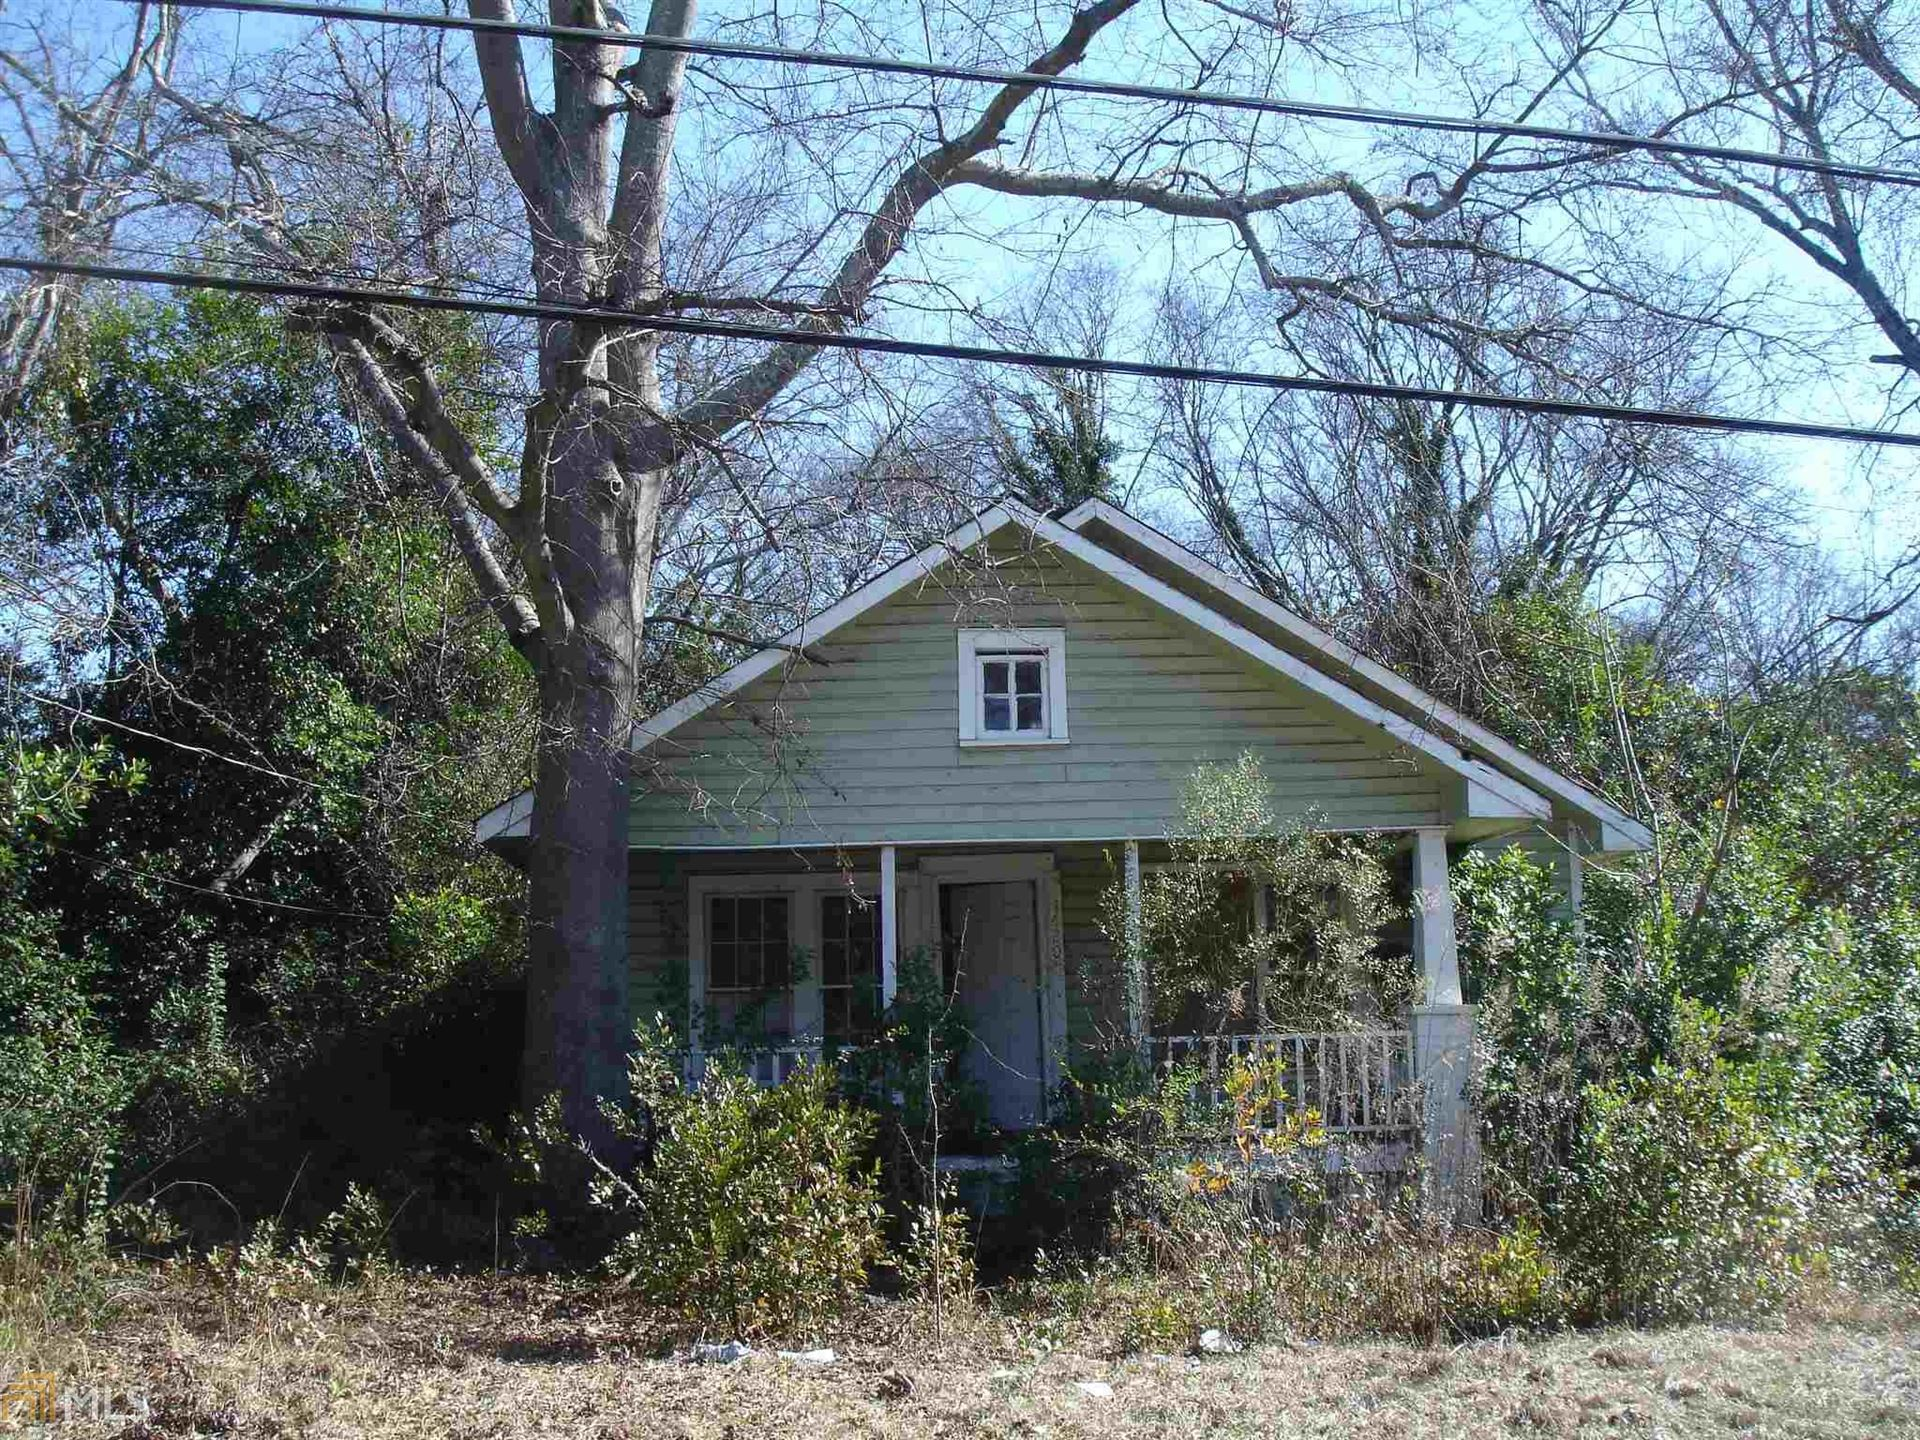 1420 Bailey Ave, Macon, GA 31204 - MLS#: 8920737